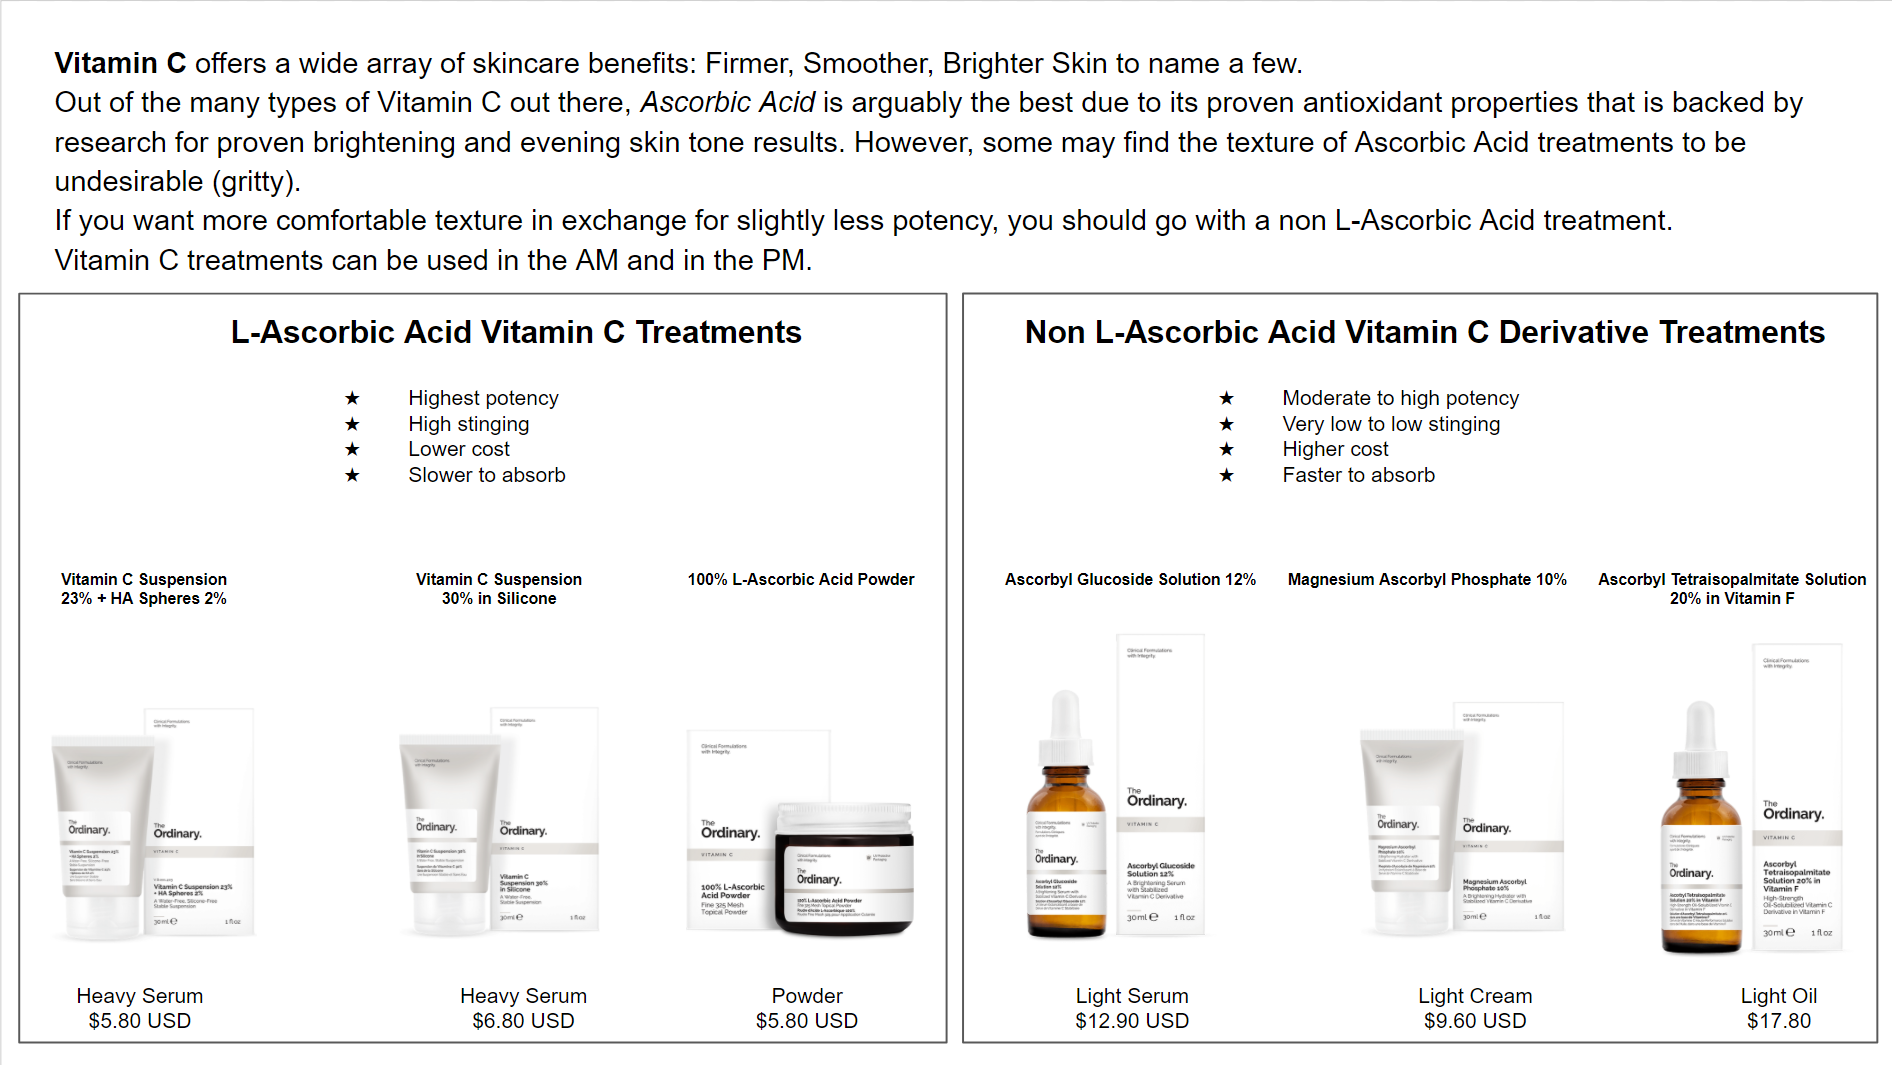 Best The Ordinary Treatments For Dark Spots Skin Care Dark Spots The Ordinary Skincare The Ordinary Skincare Routine